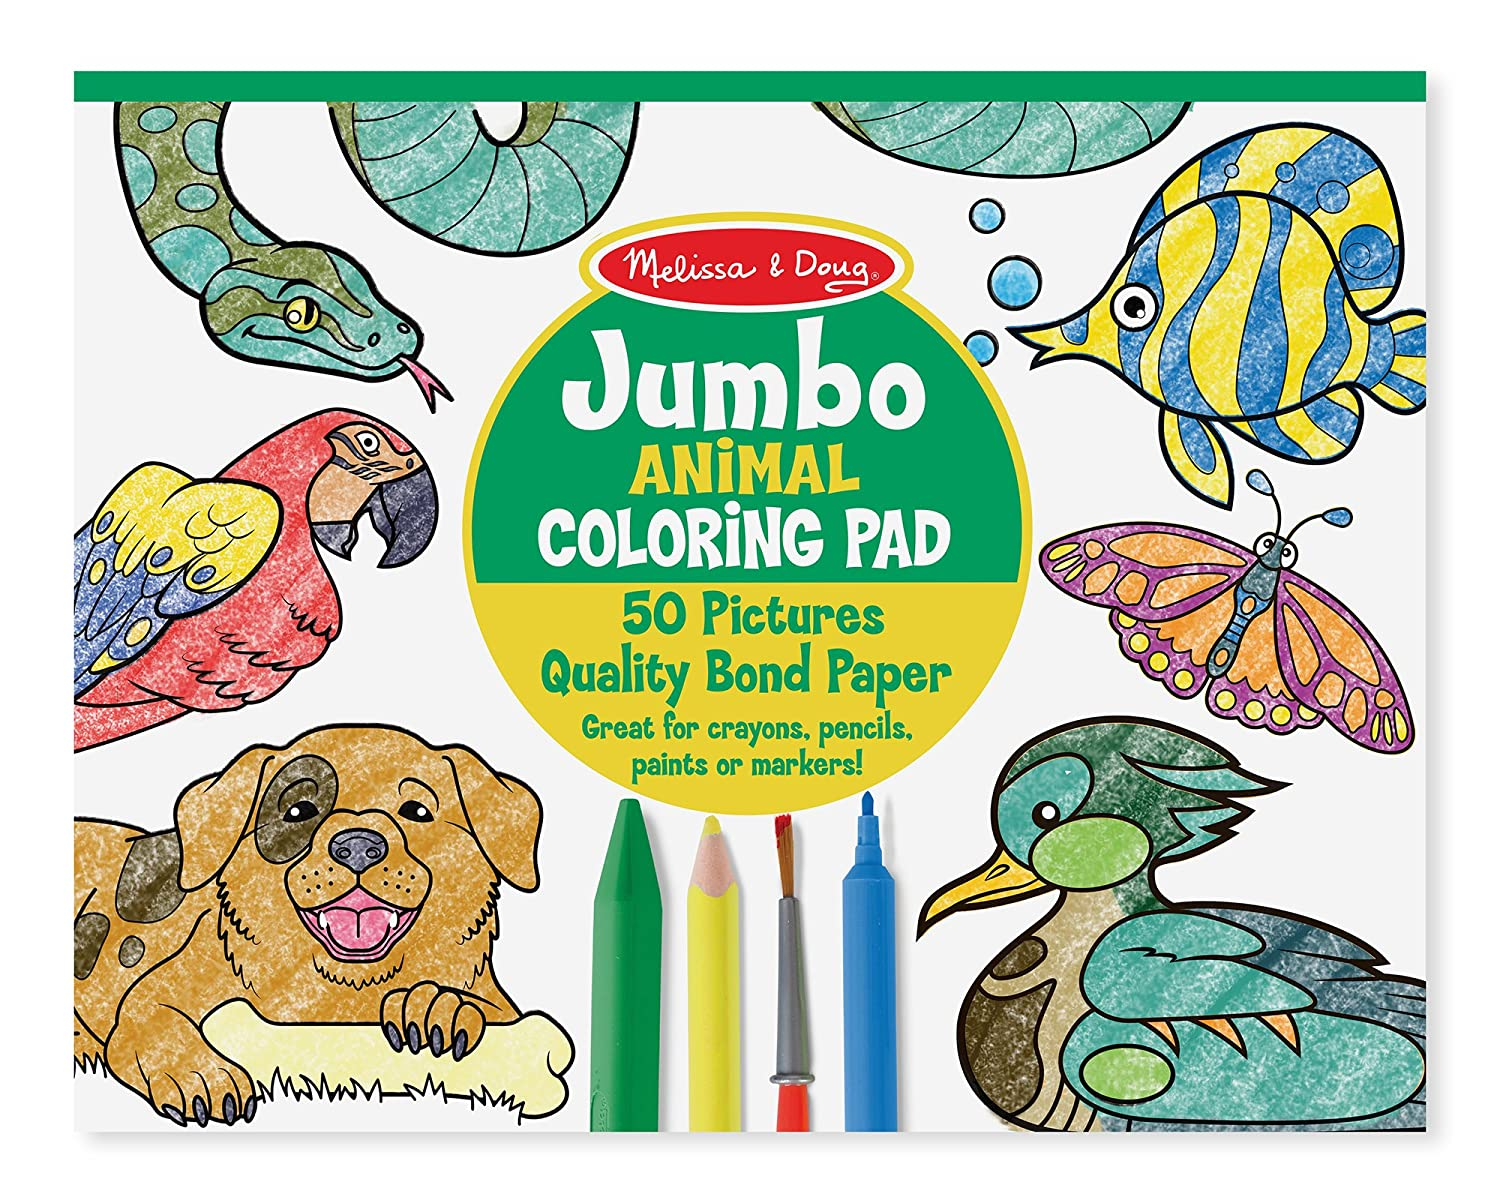 Amazon.com: Melissa & Doug Jumbo Coloring Pad - Animals: Melissa ...